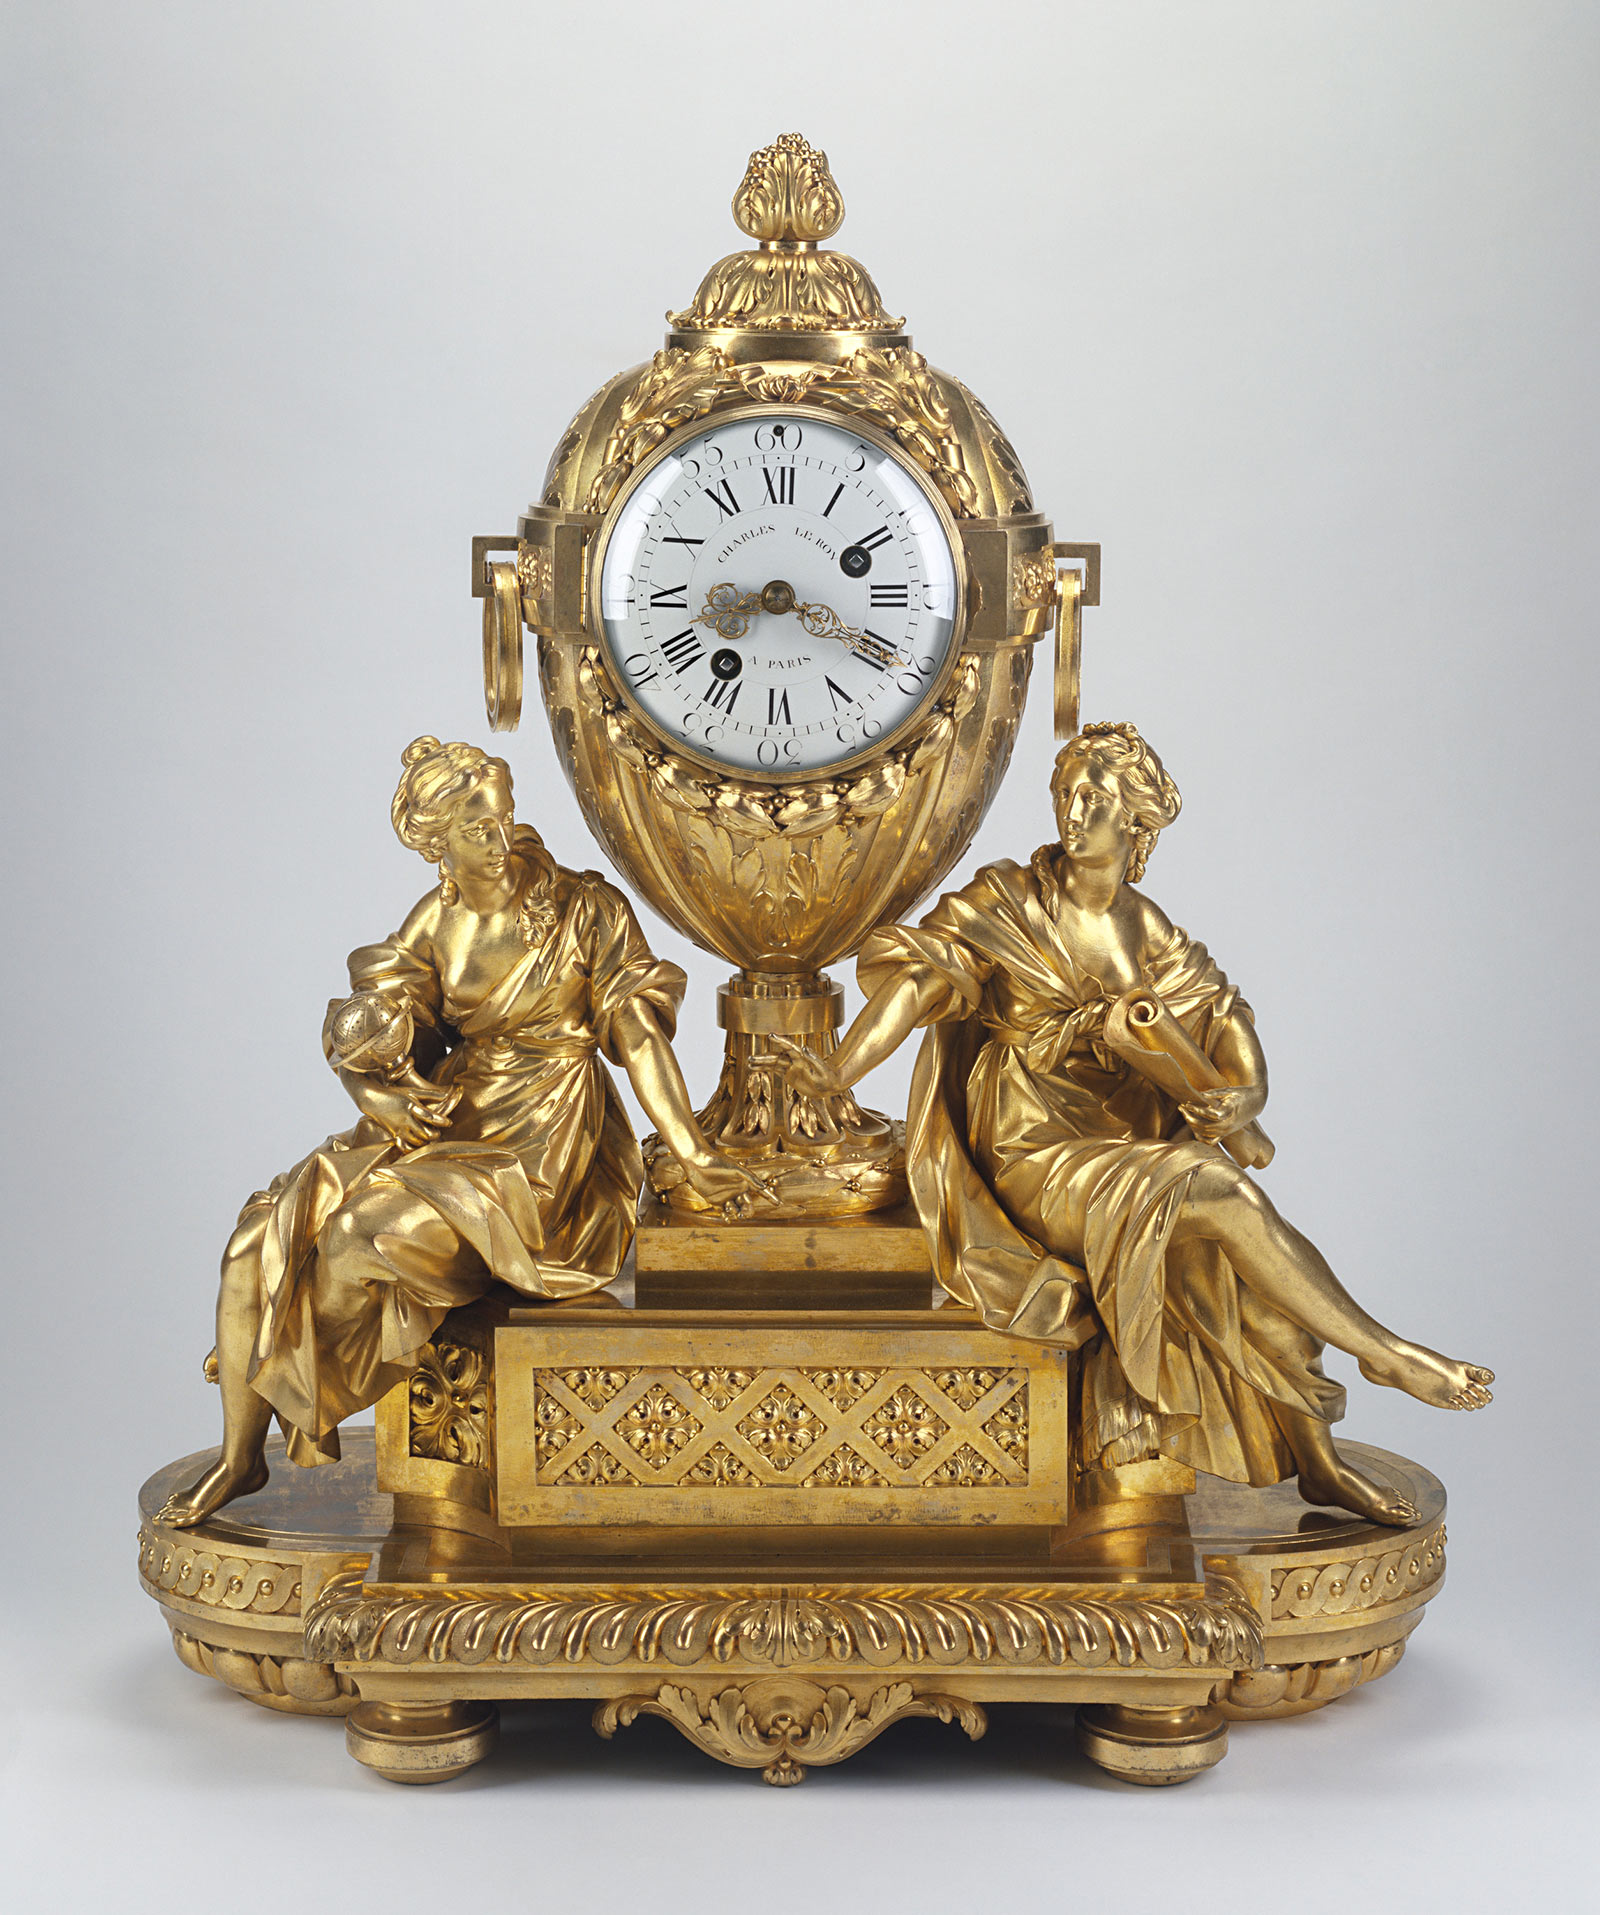 Golden clock on a foundation of two box plateaus, with female figures sitting on either side